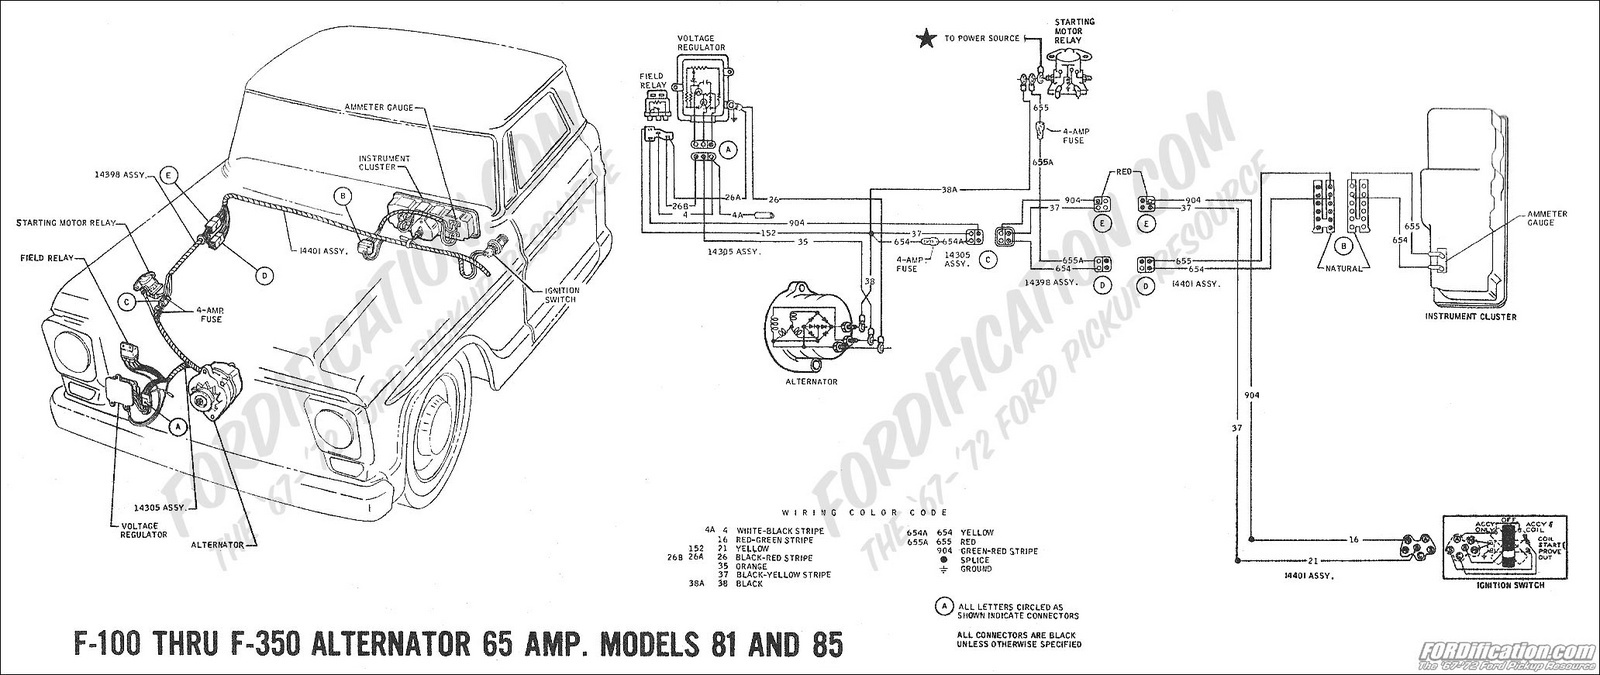 1981 ford ignition module wiring diagram wiring library